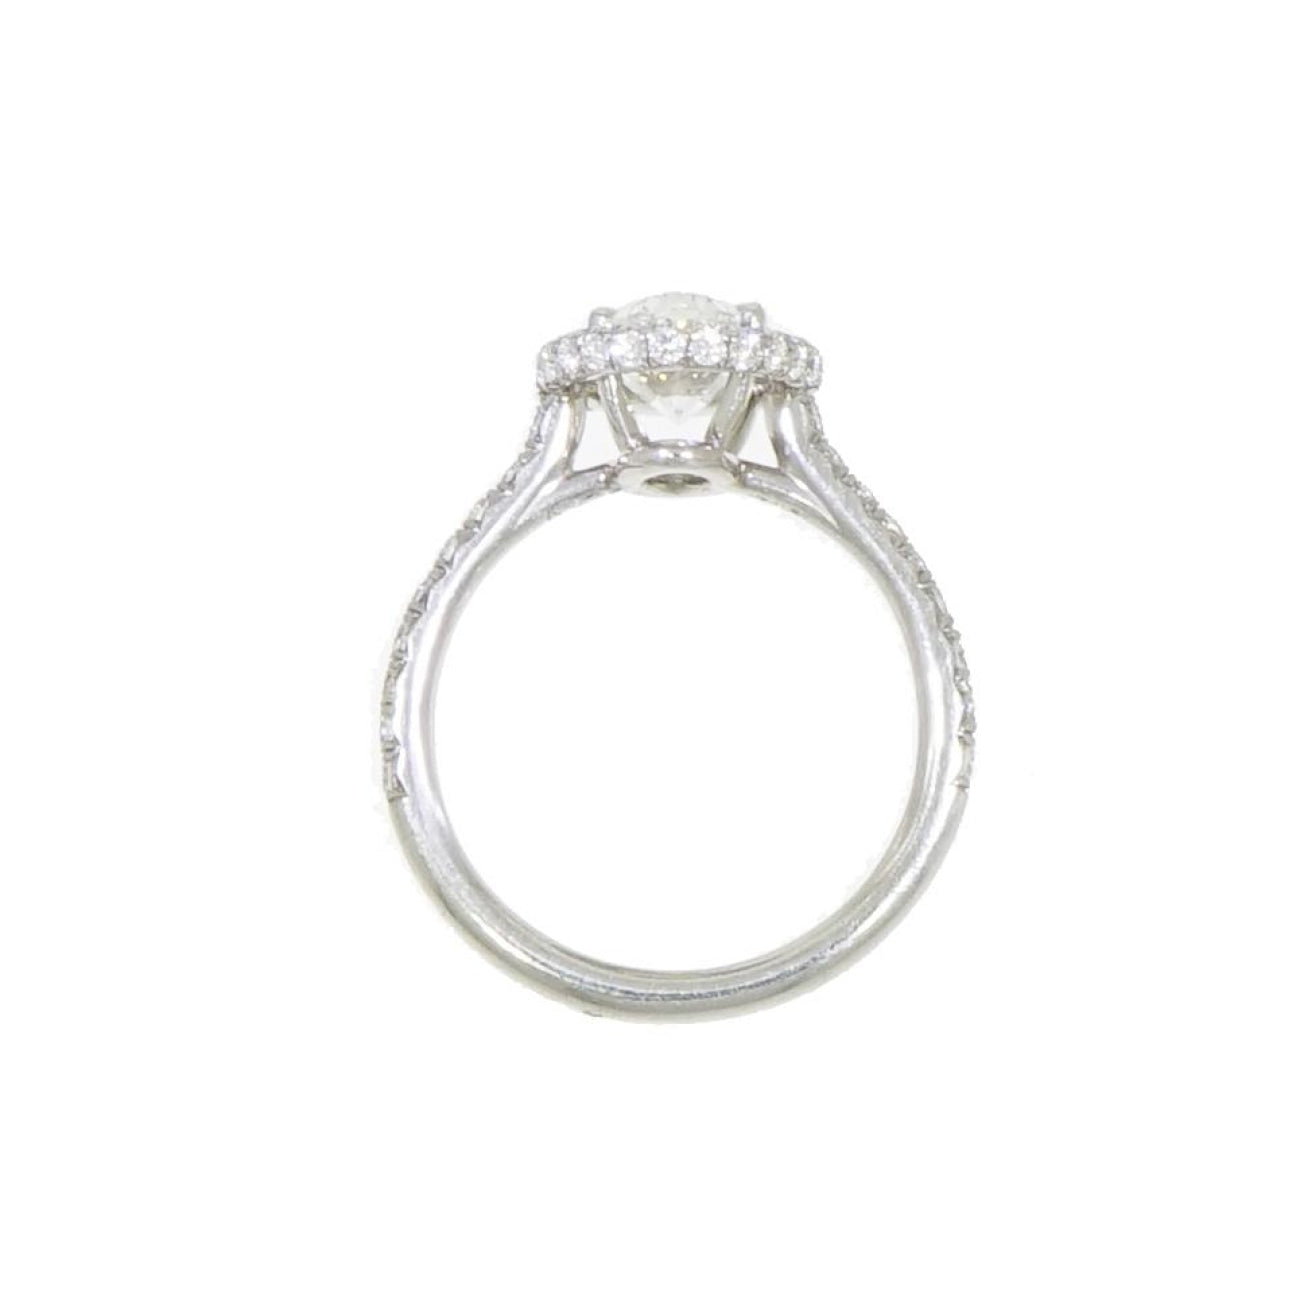 Manfredi Jewels Jewelry - Engagement Ring 20-65-25035 | Manfredi Jewels